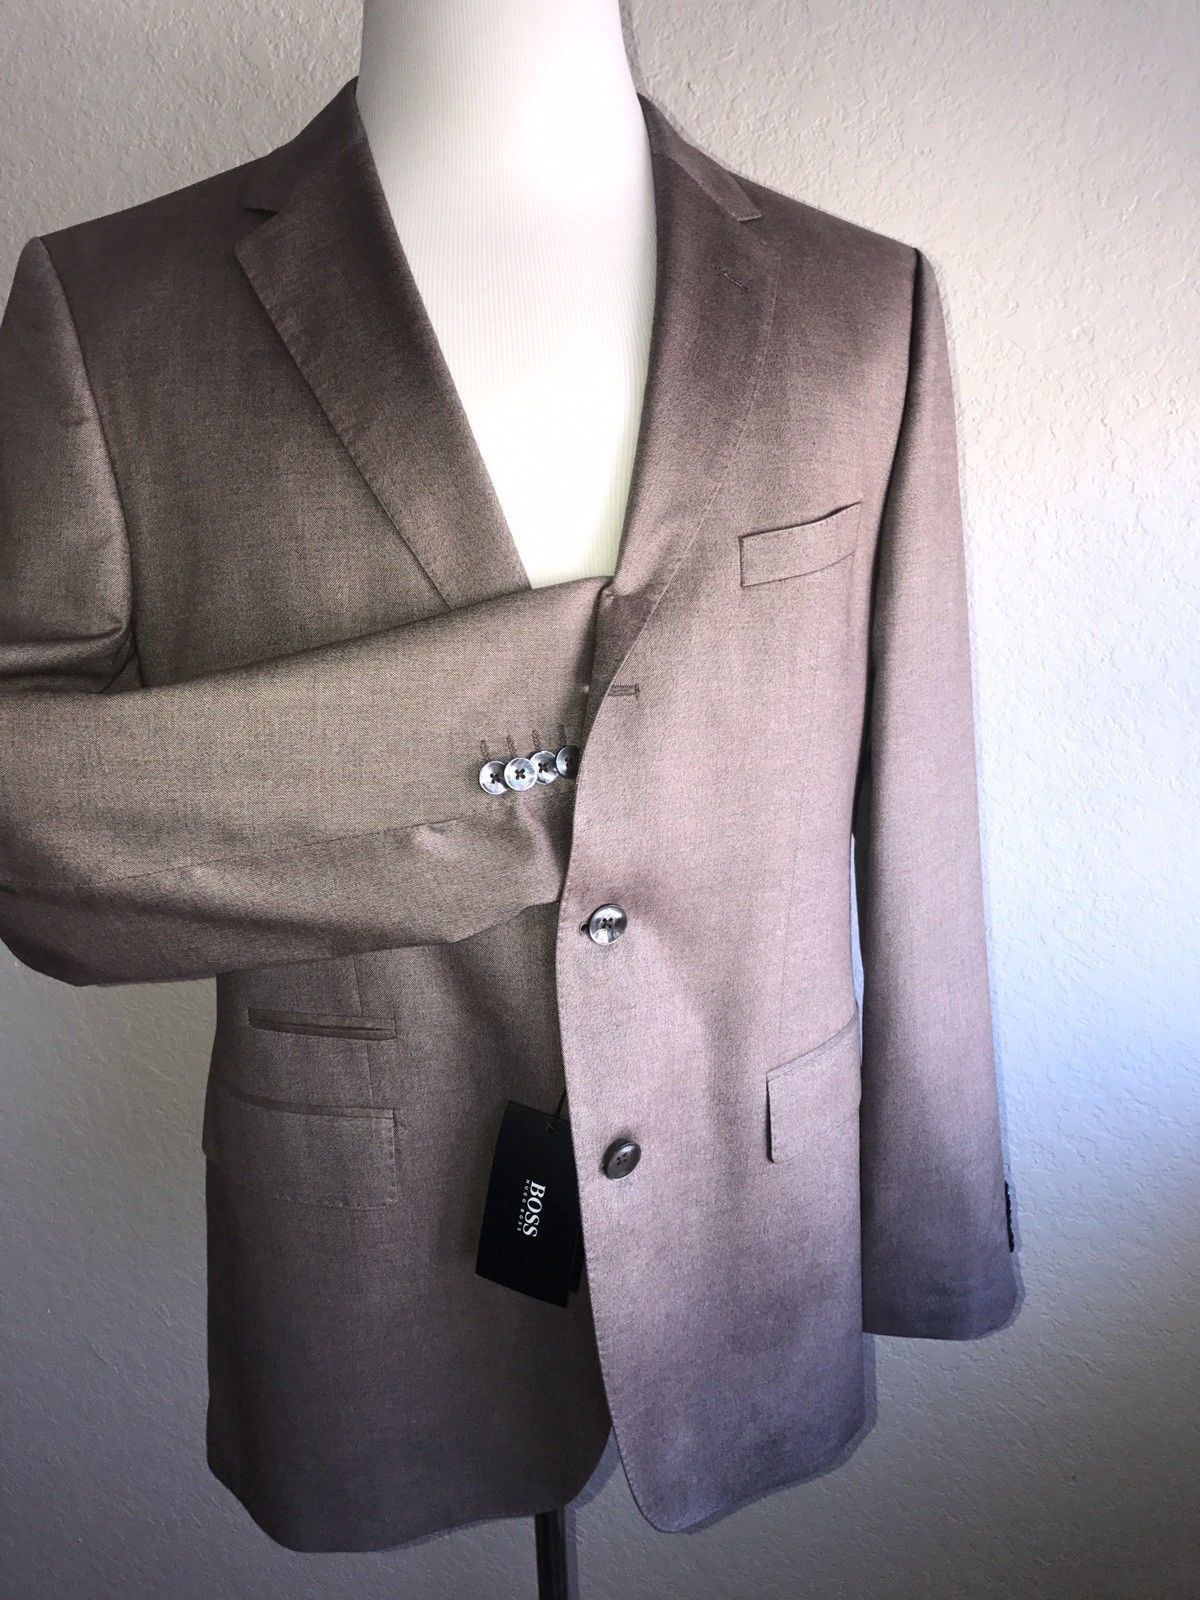 NWT $995 Boss Hugo Boss Johnston2 Silk Sport Coat Jacket Brown 42R US (52 Eu)